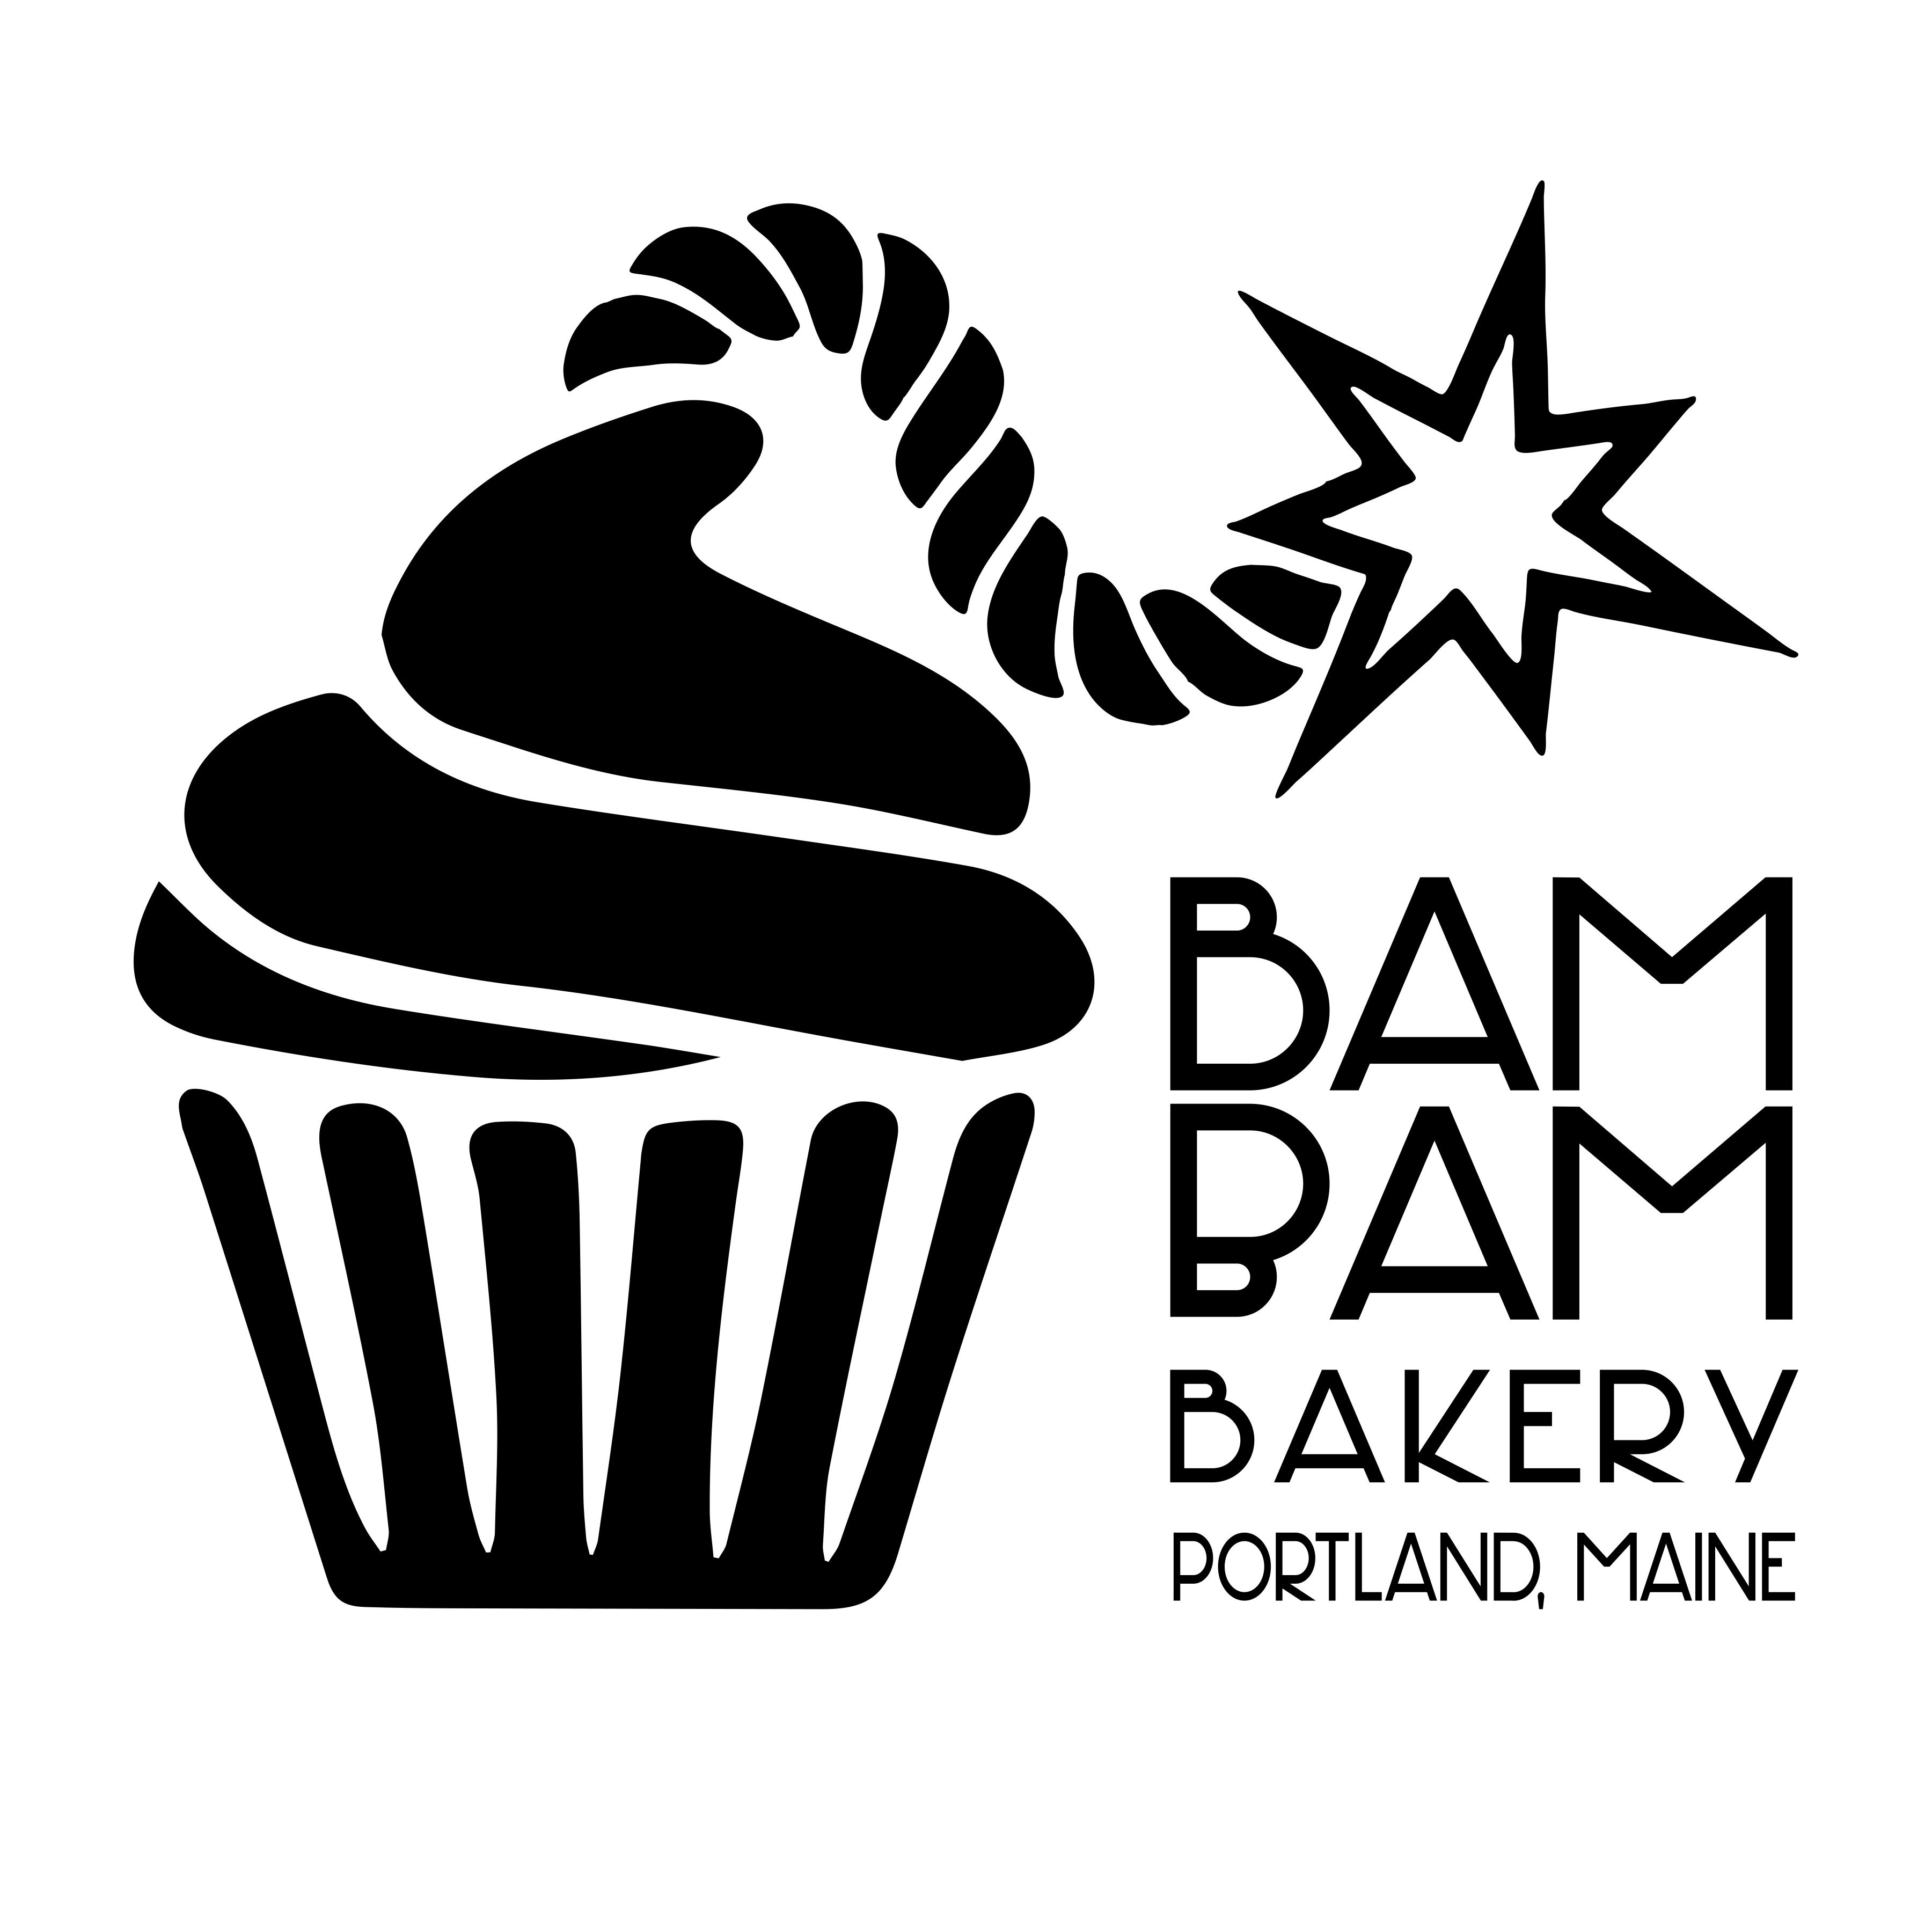 Home Bakery, Bambam, Whoopie pies